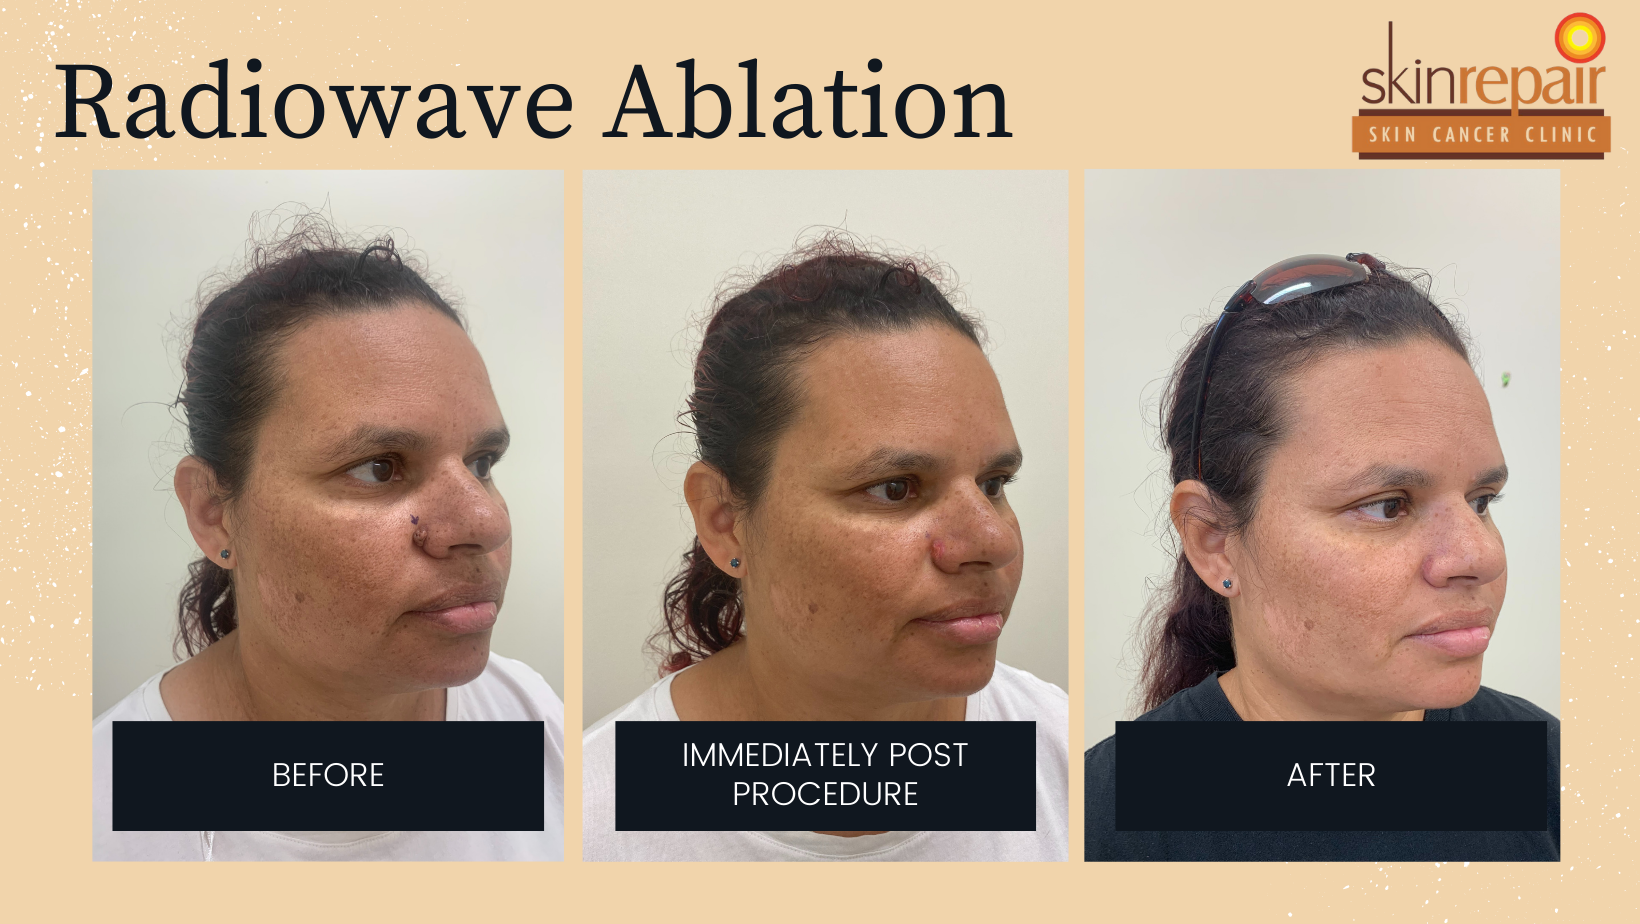 radiowave ablation before after